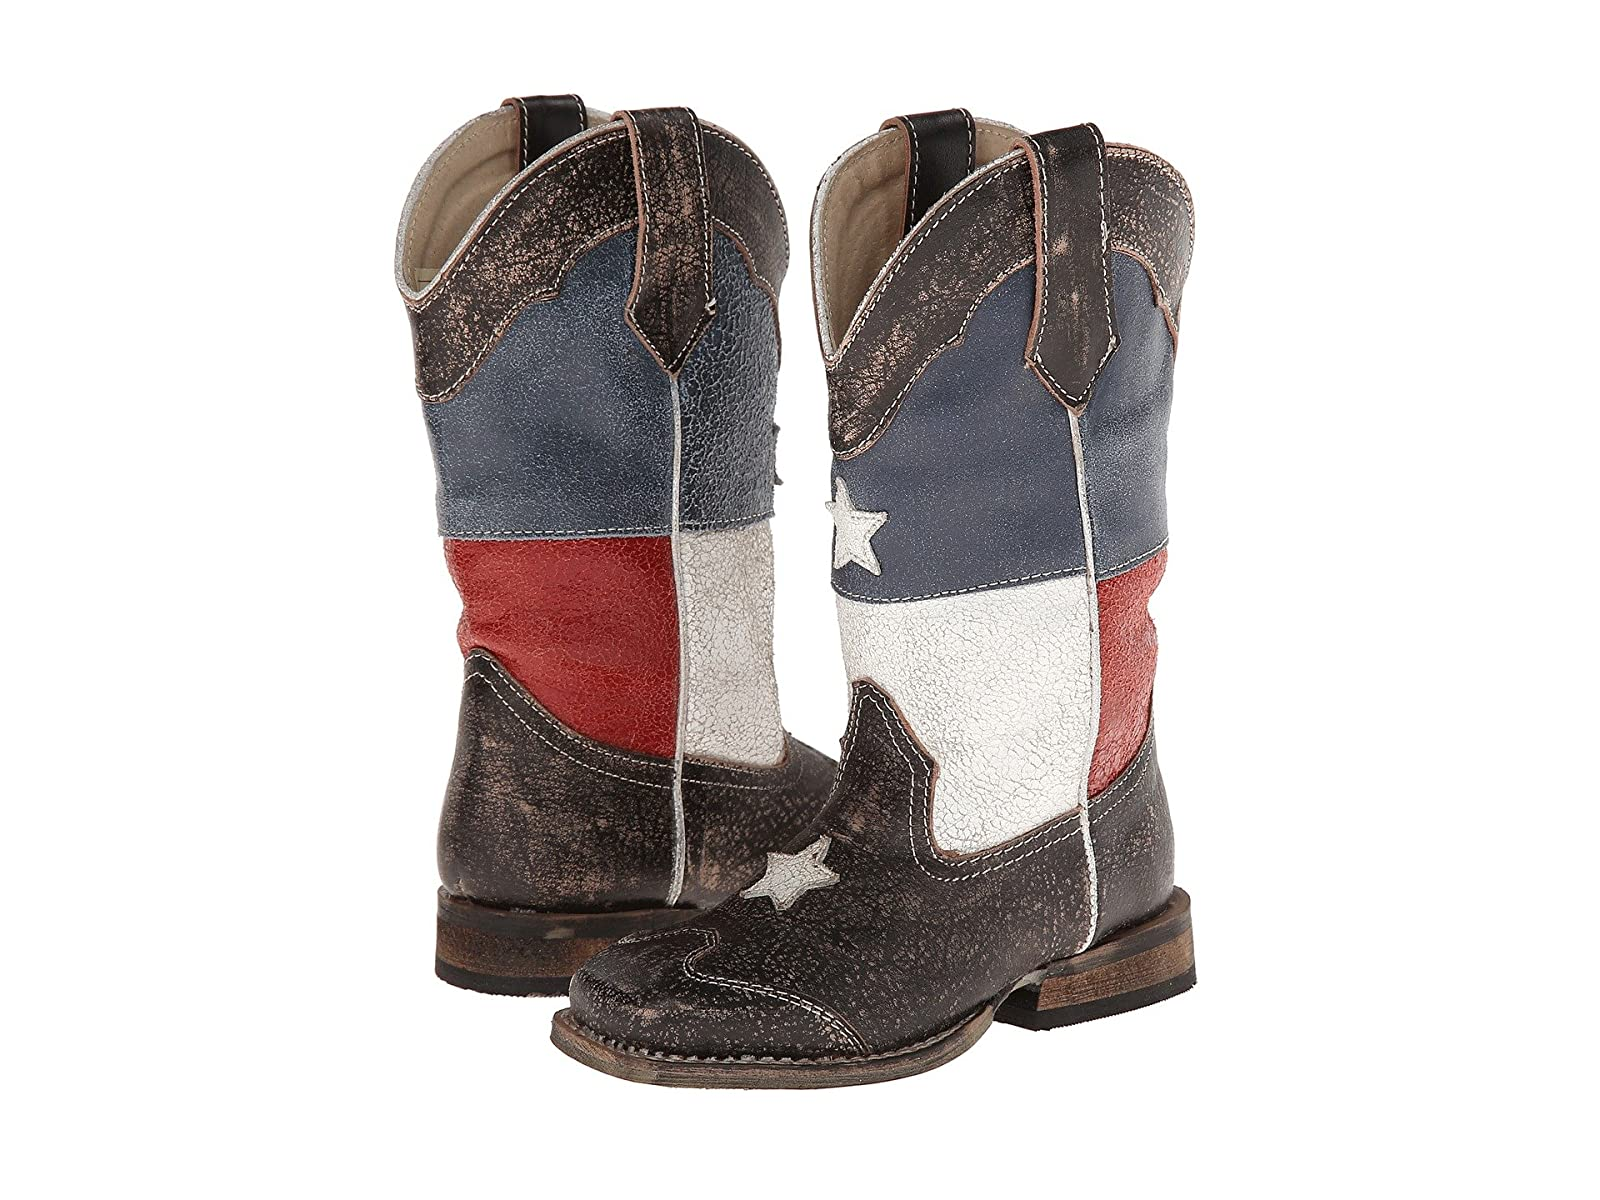 Roper Kids Texas Flag Square Toe Boot (Toddler/Little Kid)Economical and quality shoes